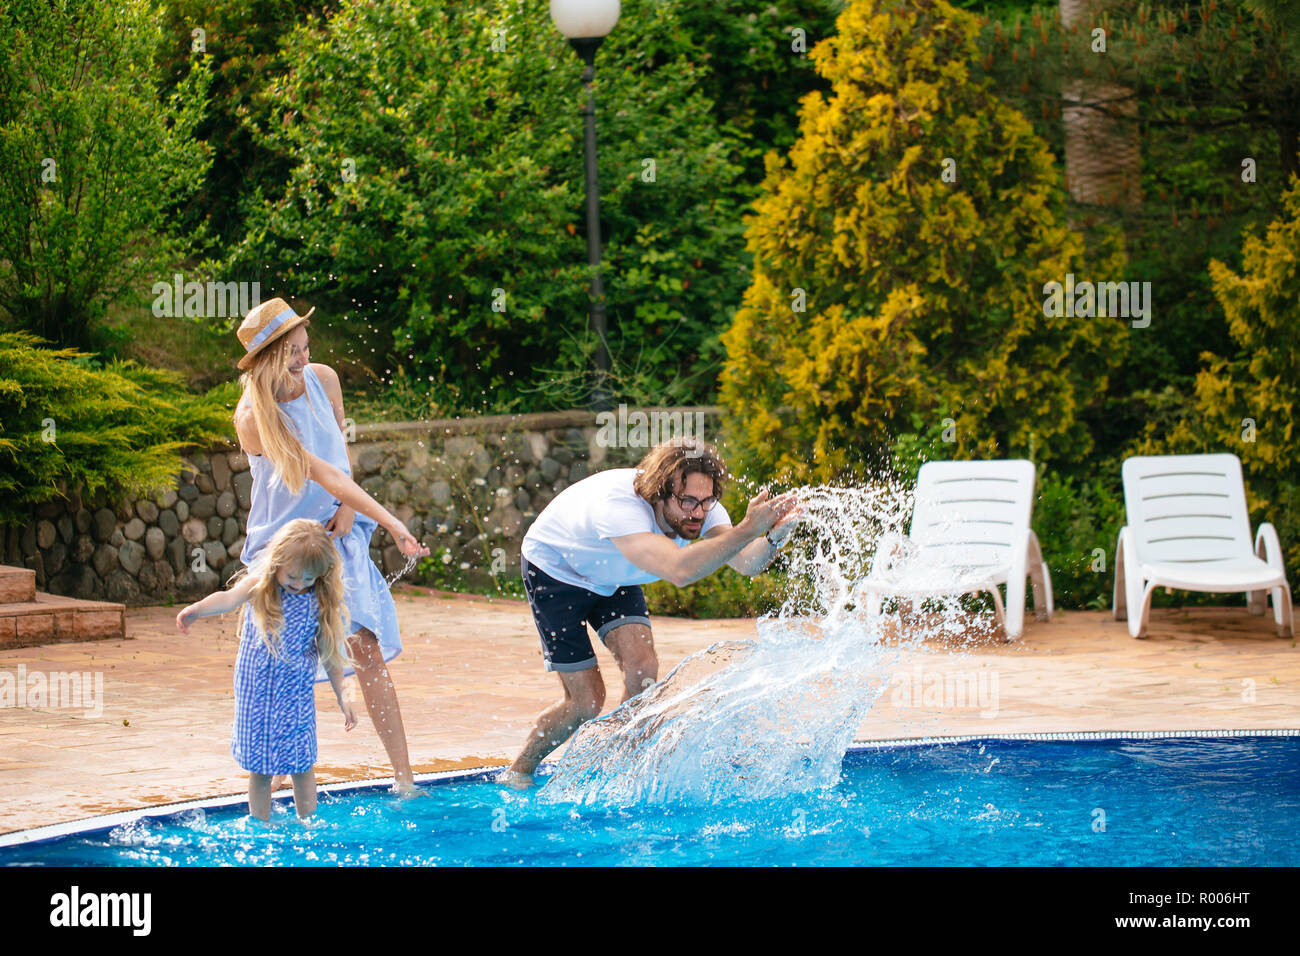 family having fun their pool. family splashing water with legs or hands in swimming pool - Stock Image